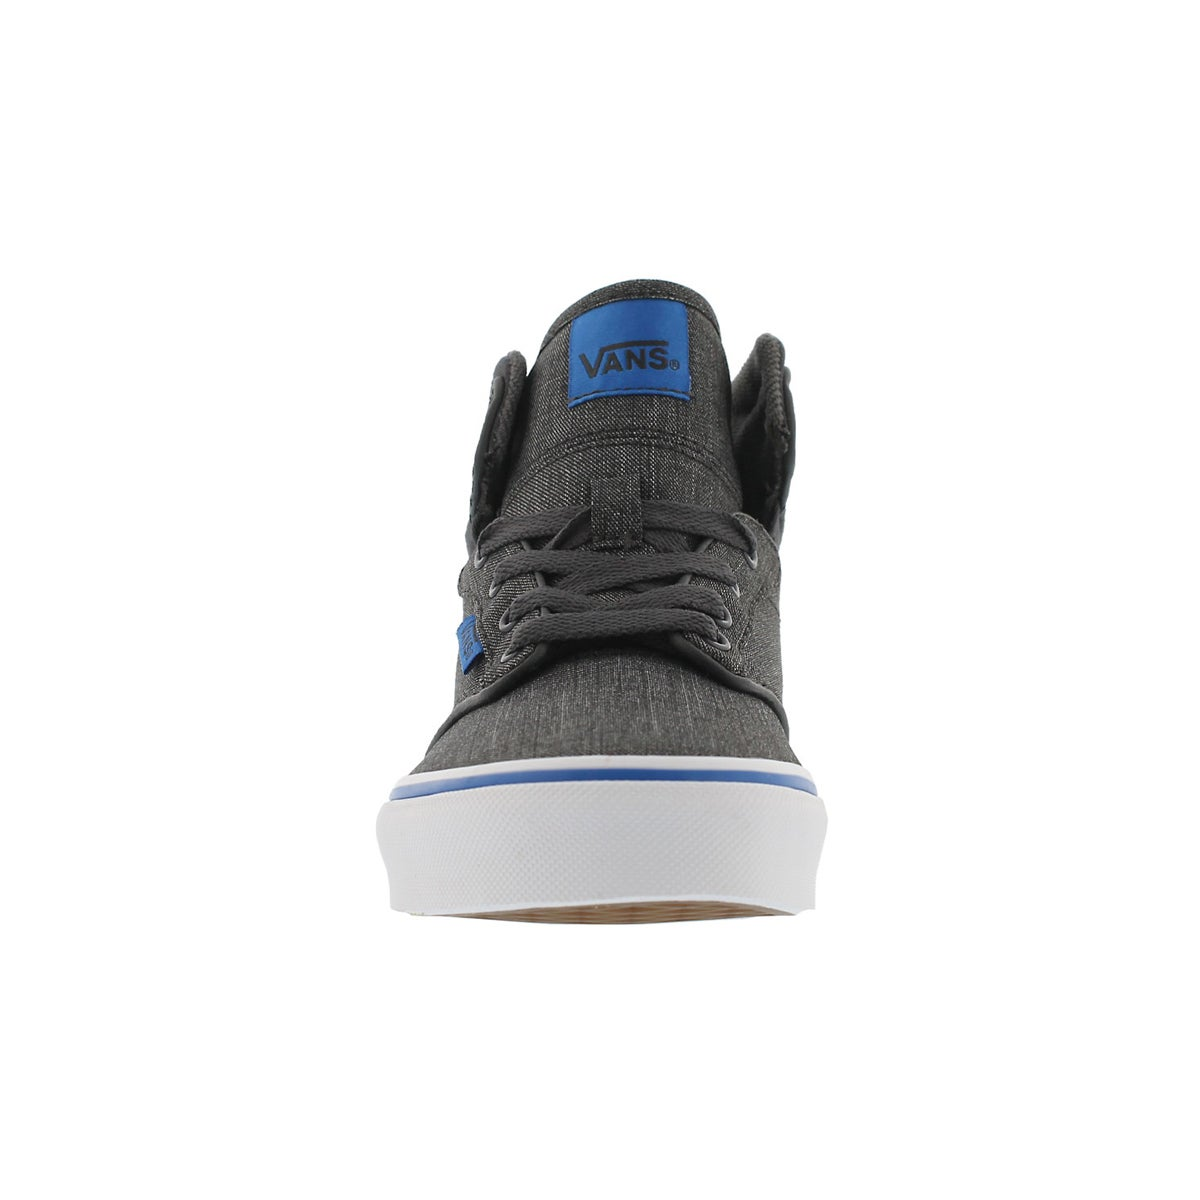 Bys Atwood Hi gry/blu lace up sneaker